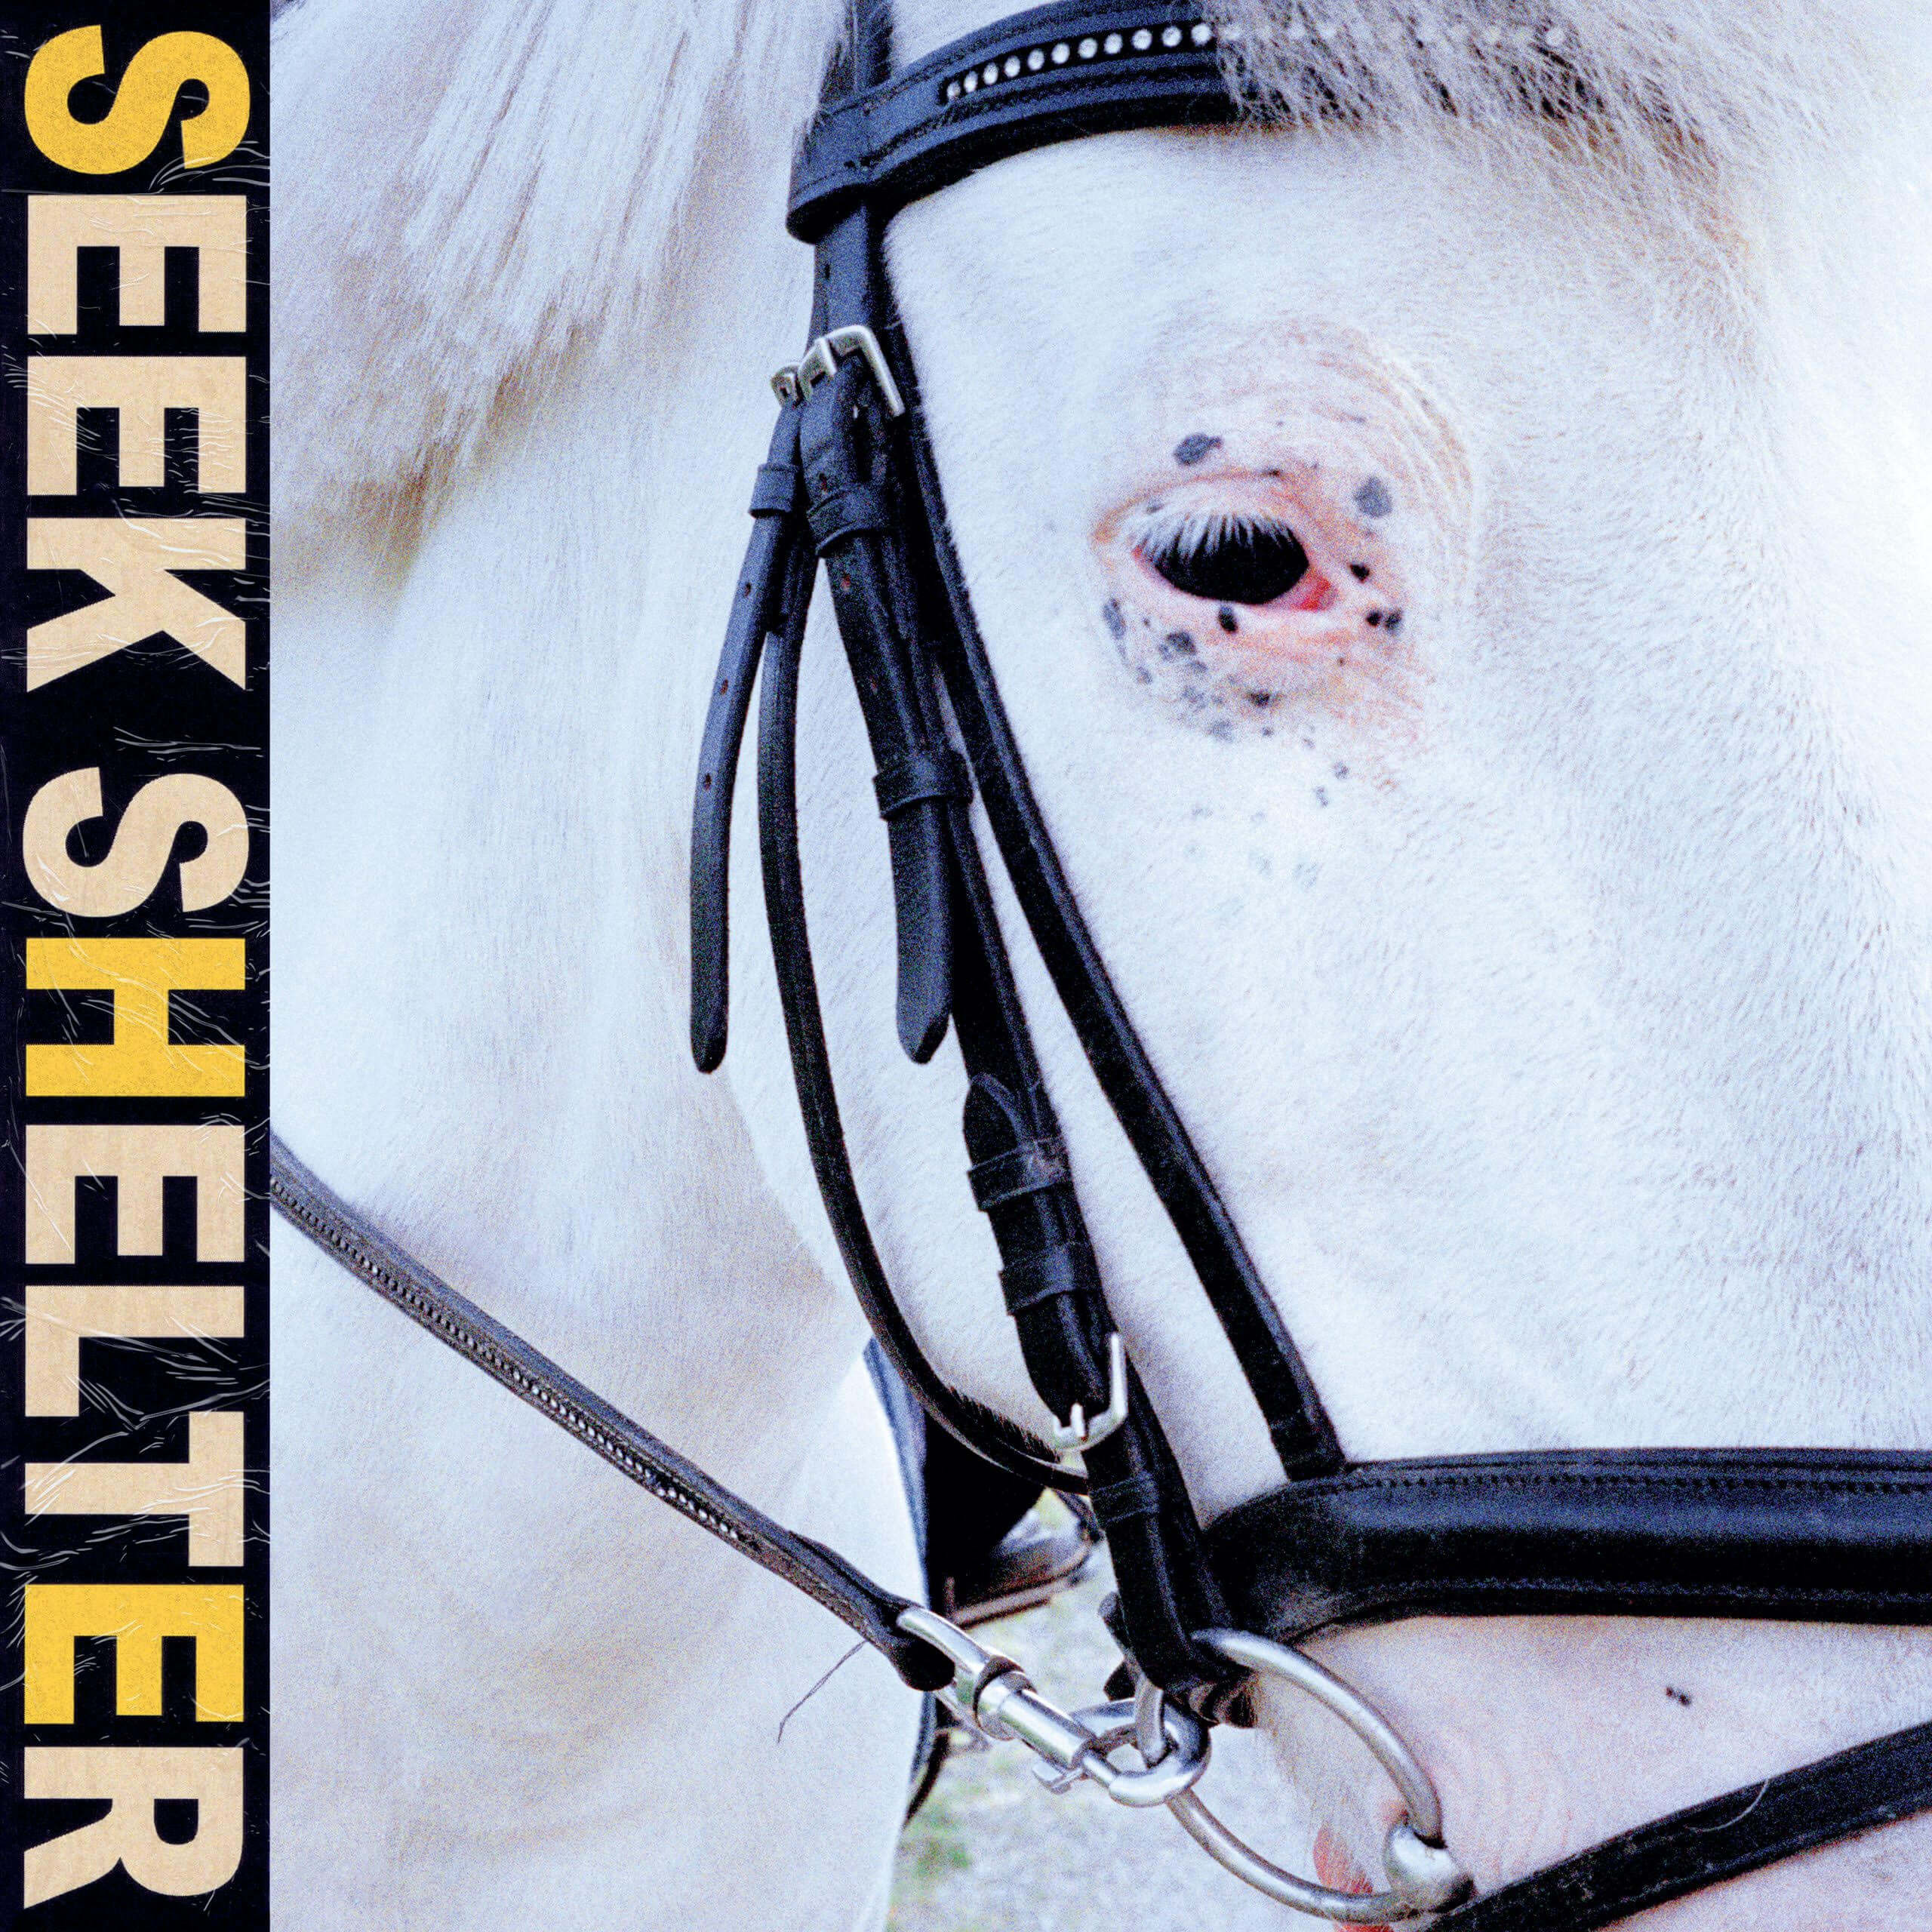 iceage seek shelter new album review cover artwork